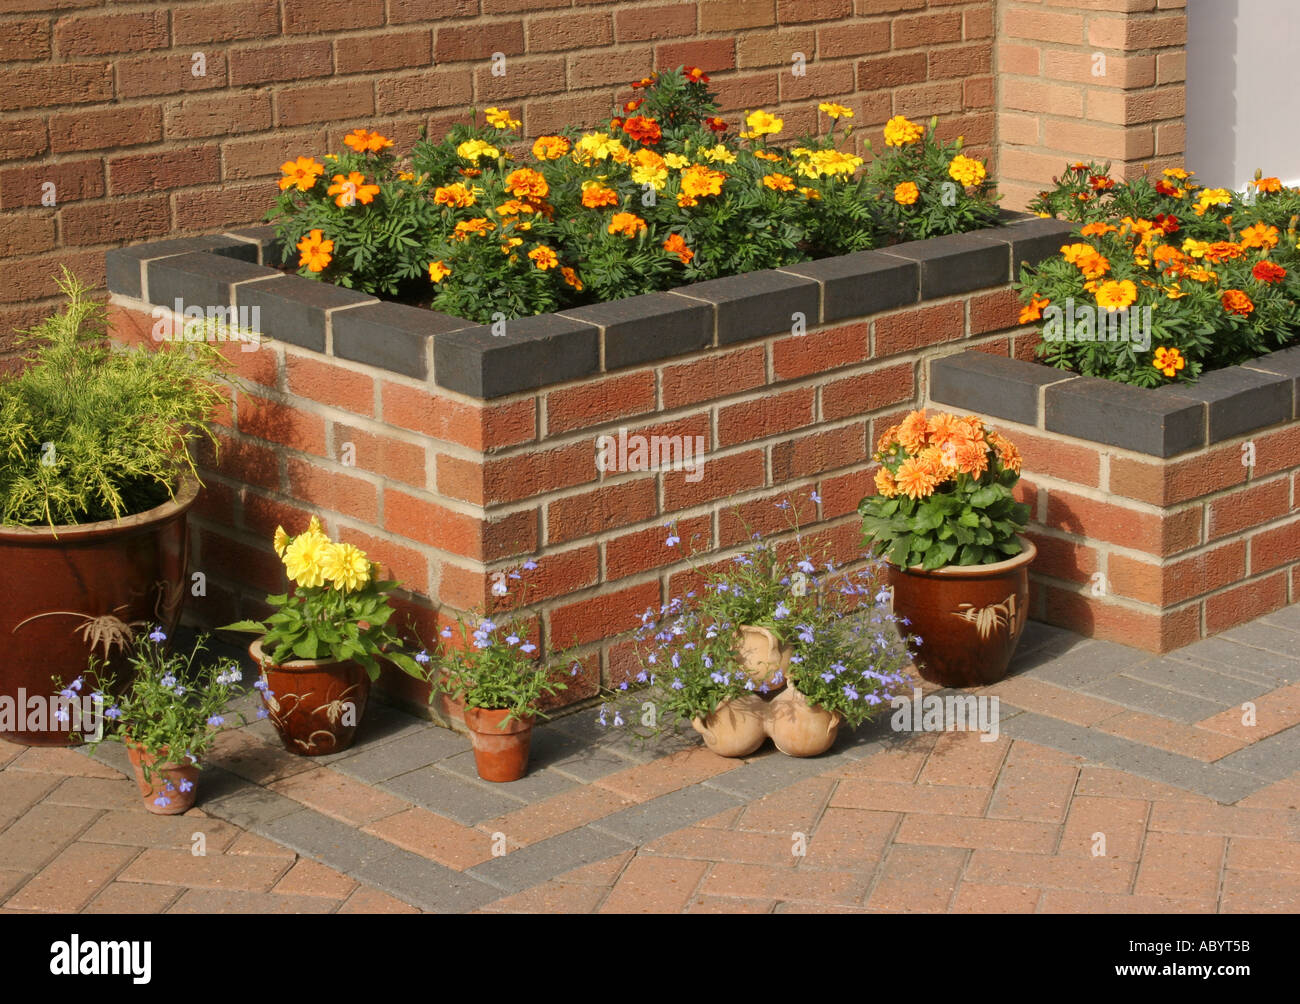 Summer Flowers In A Raised Bed With Pots On A Patio